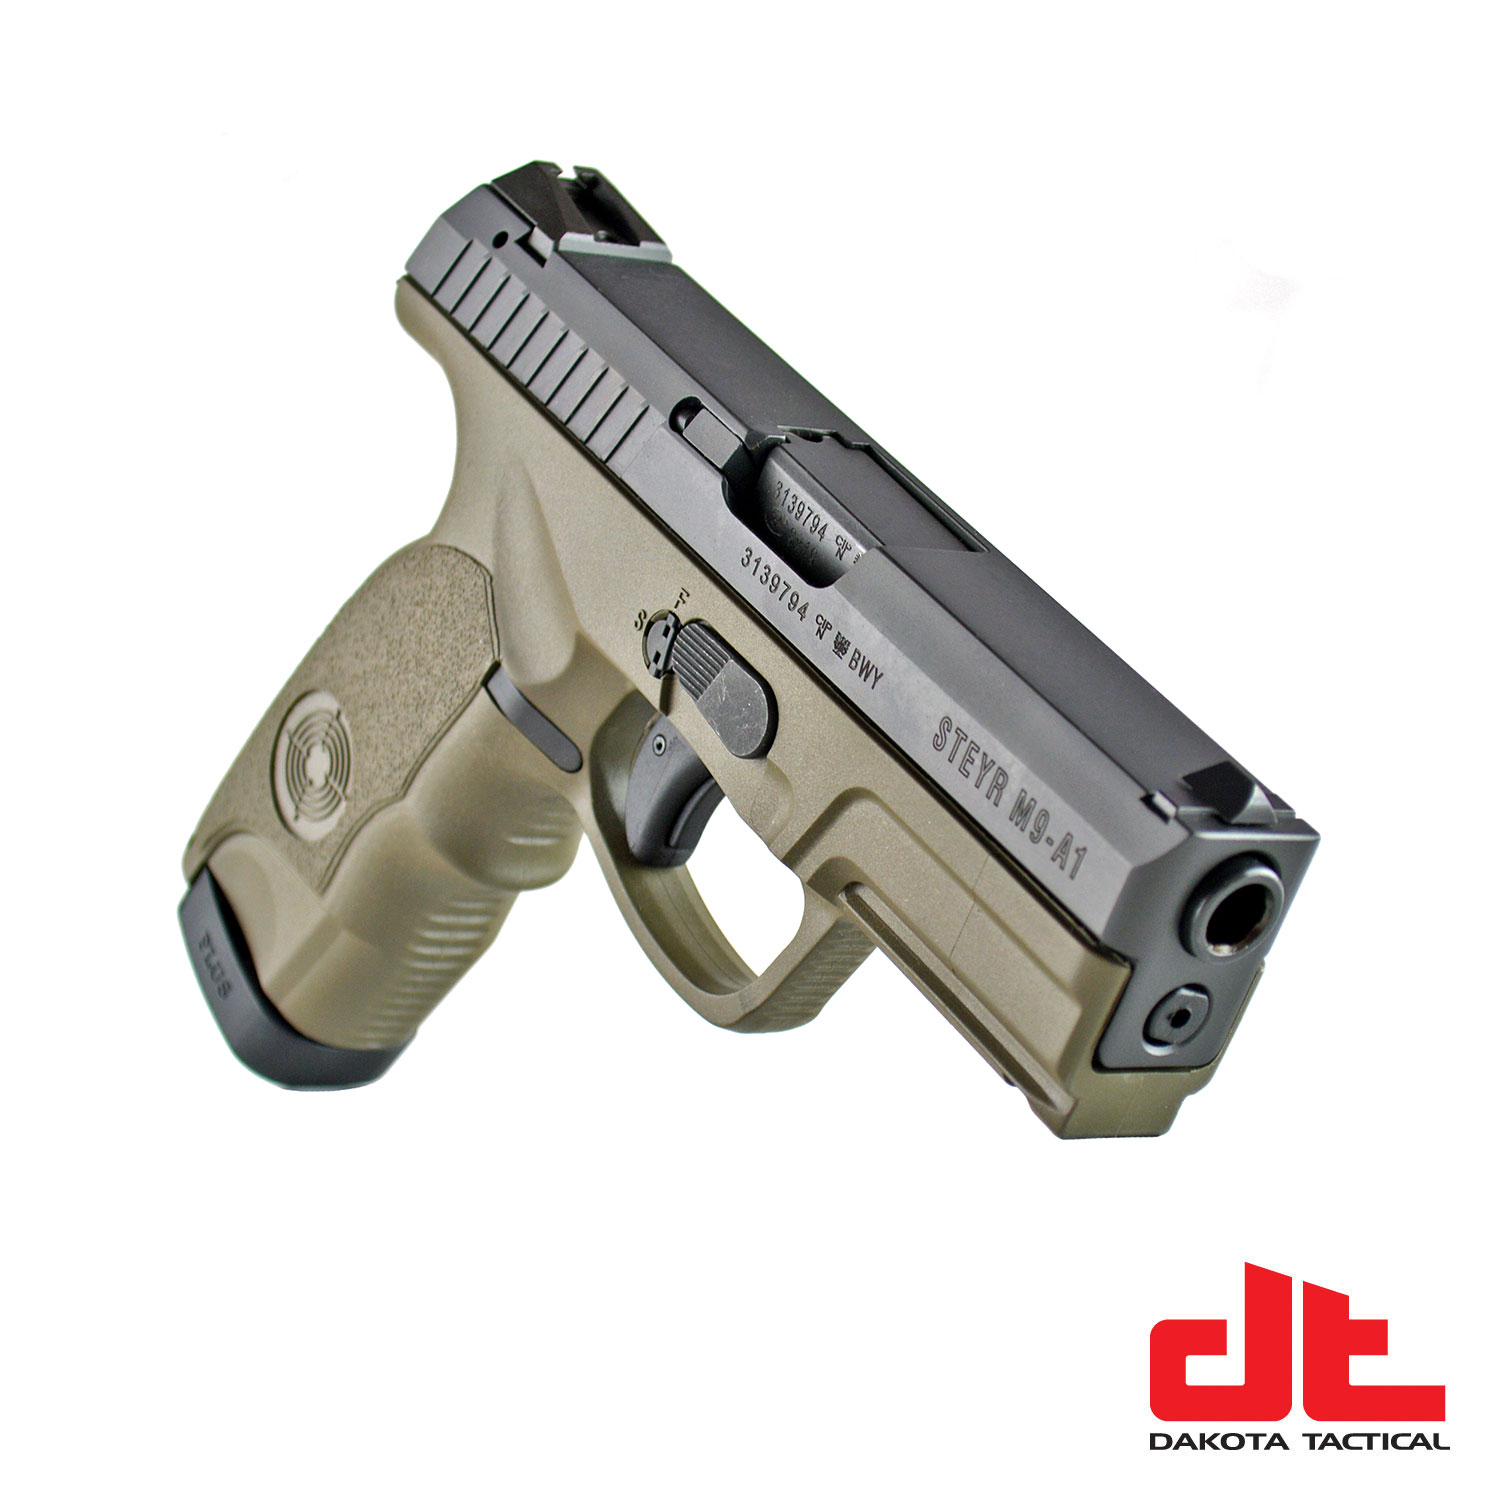 Steyr Arms M9-A1 9mm Semi-Automatic Pistol OD GREEN ...